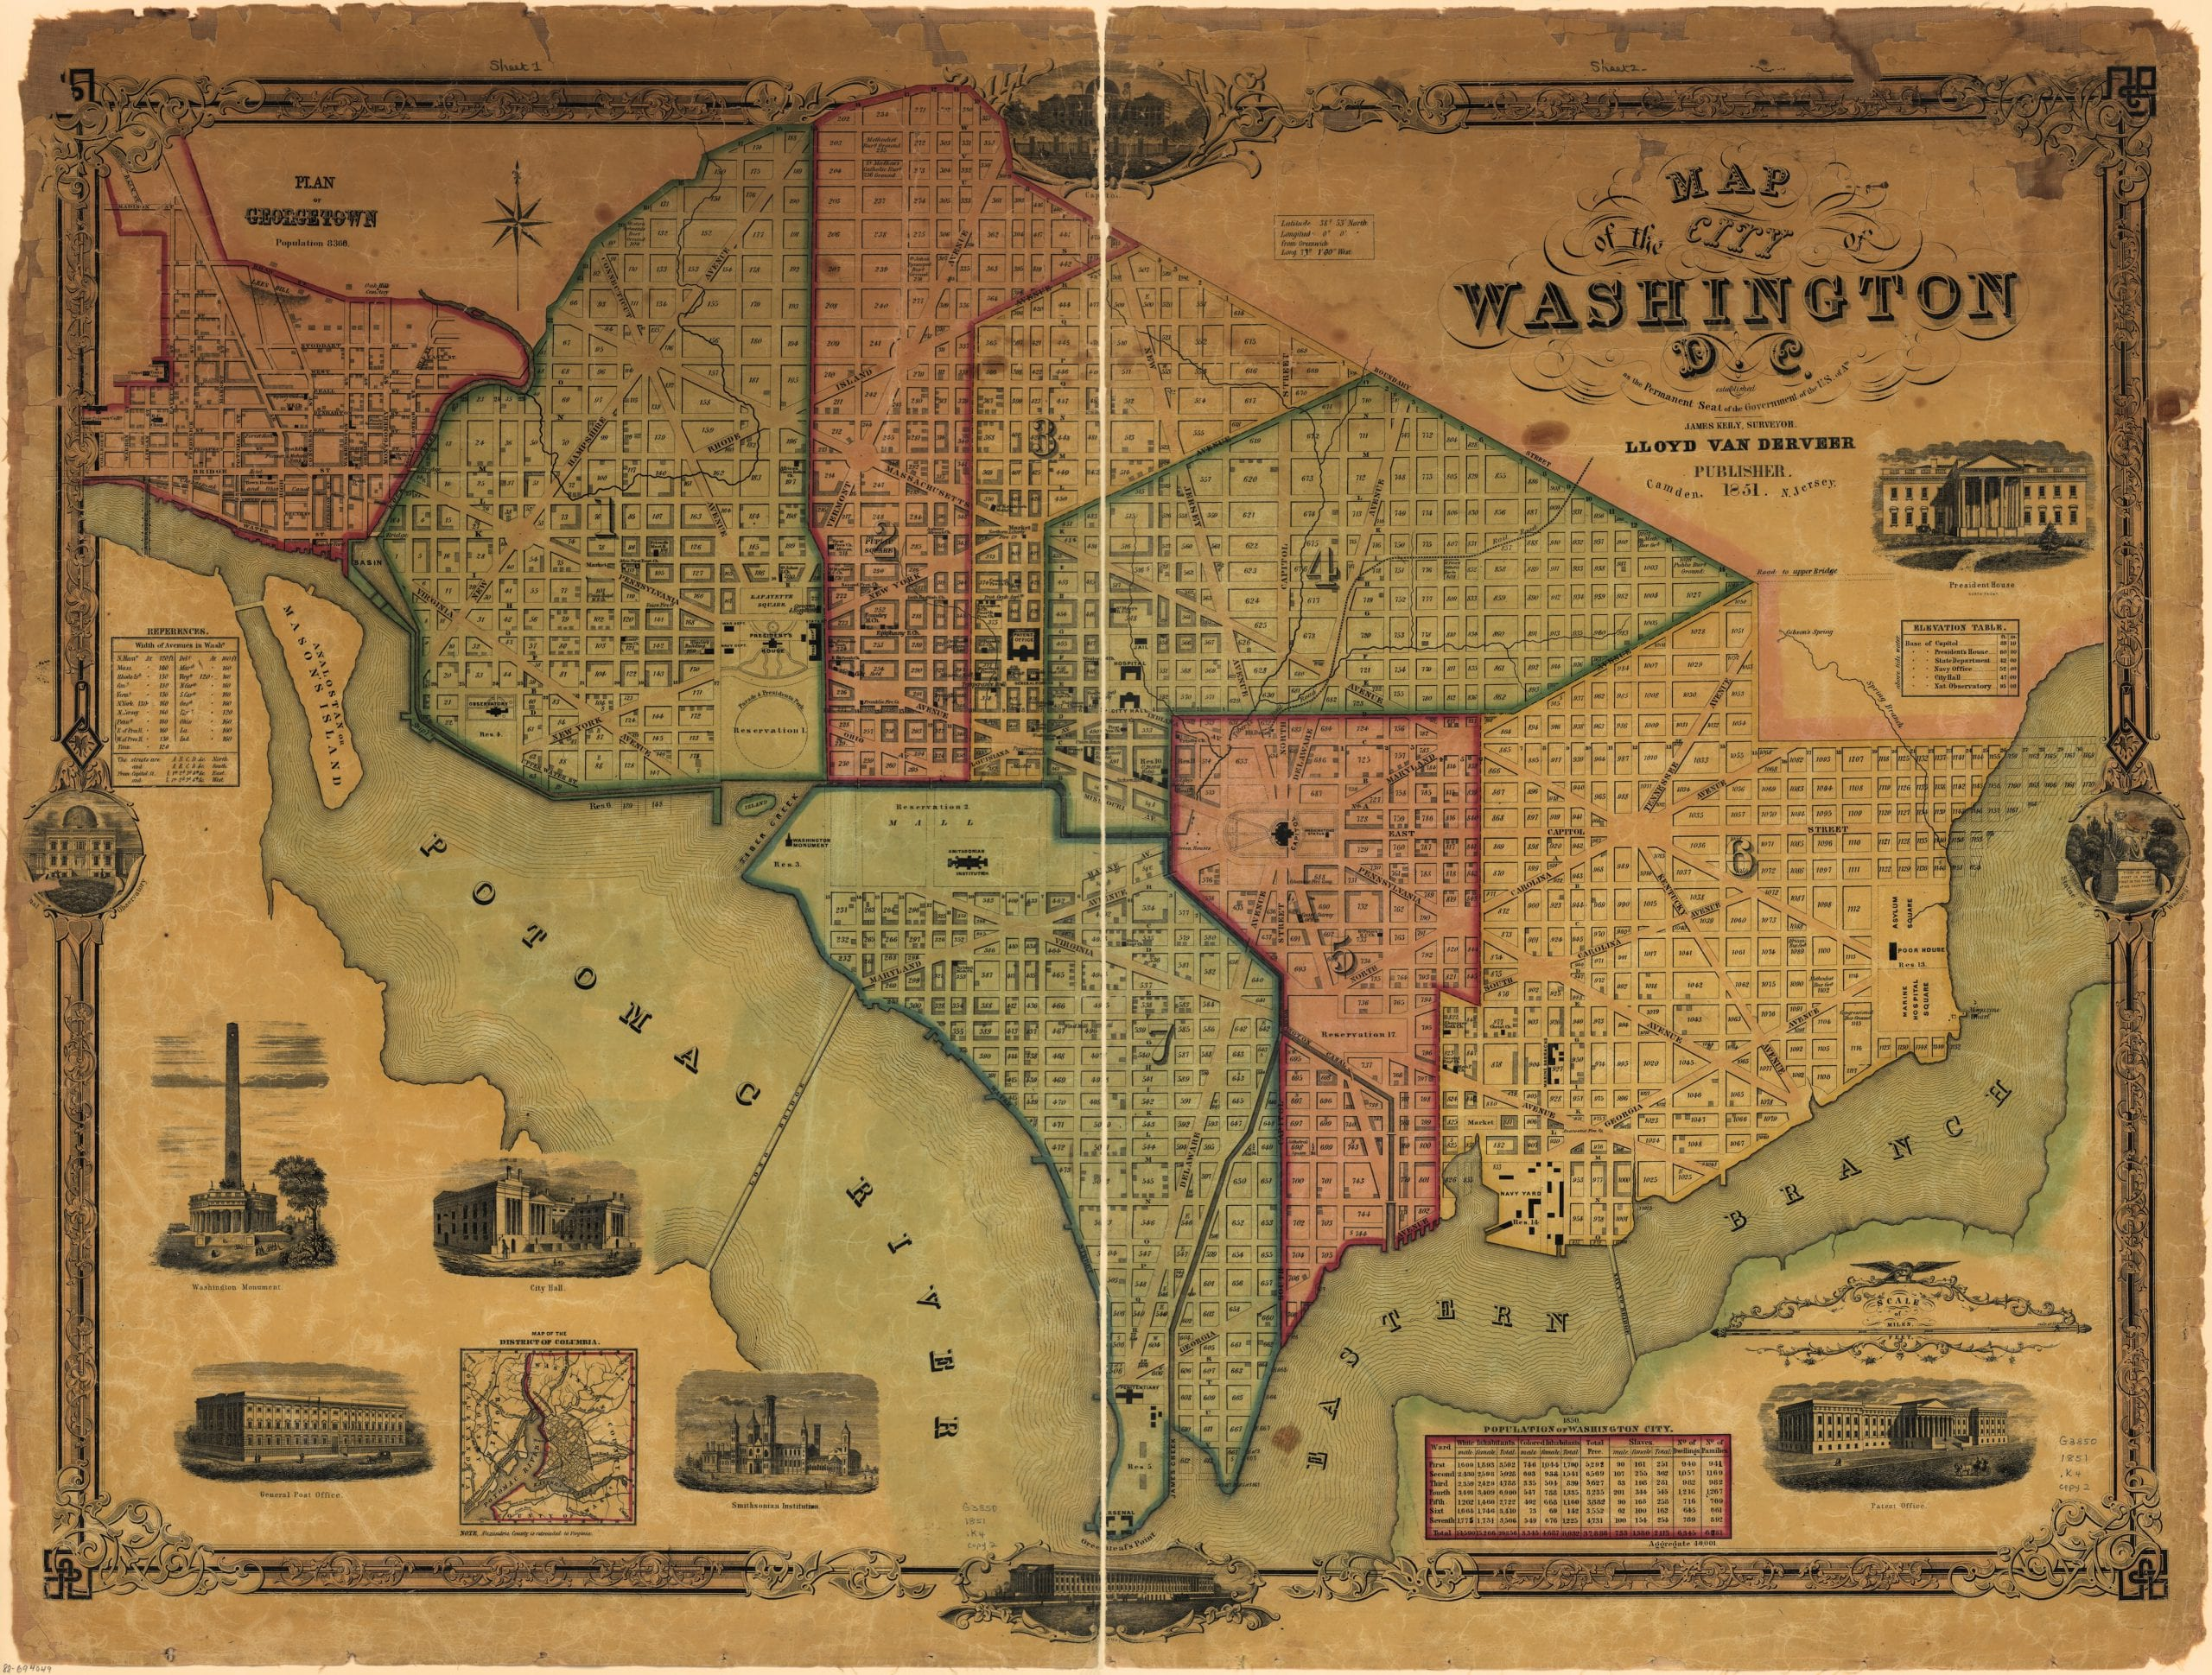 1851 Map of the City of Washington, D.C.